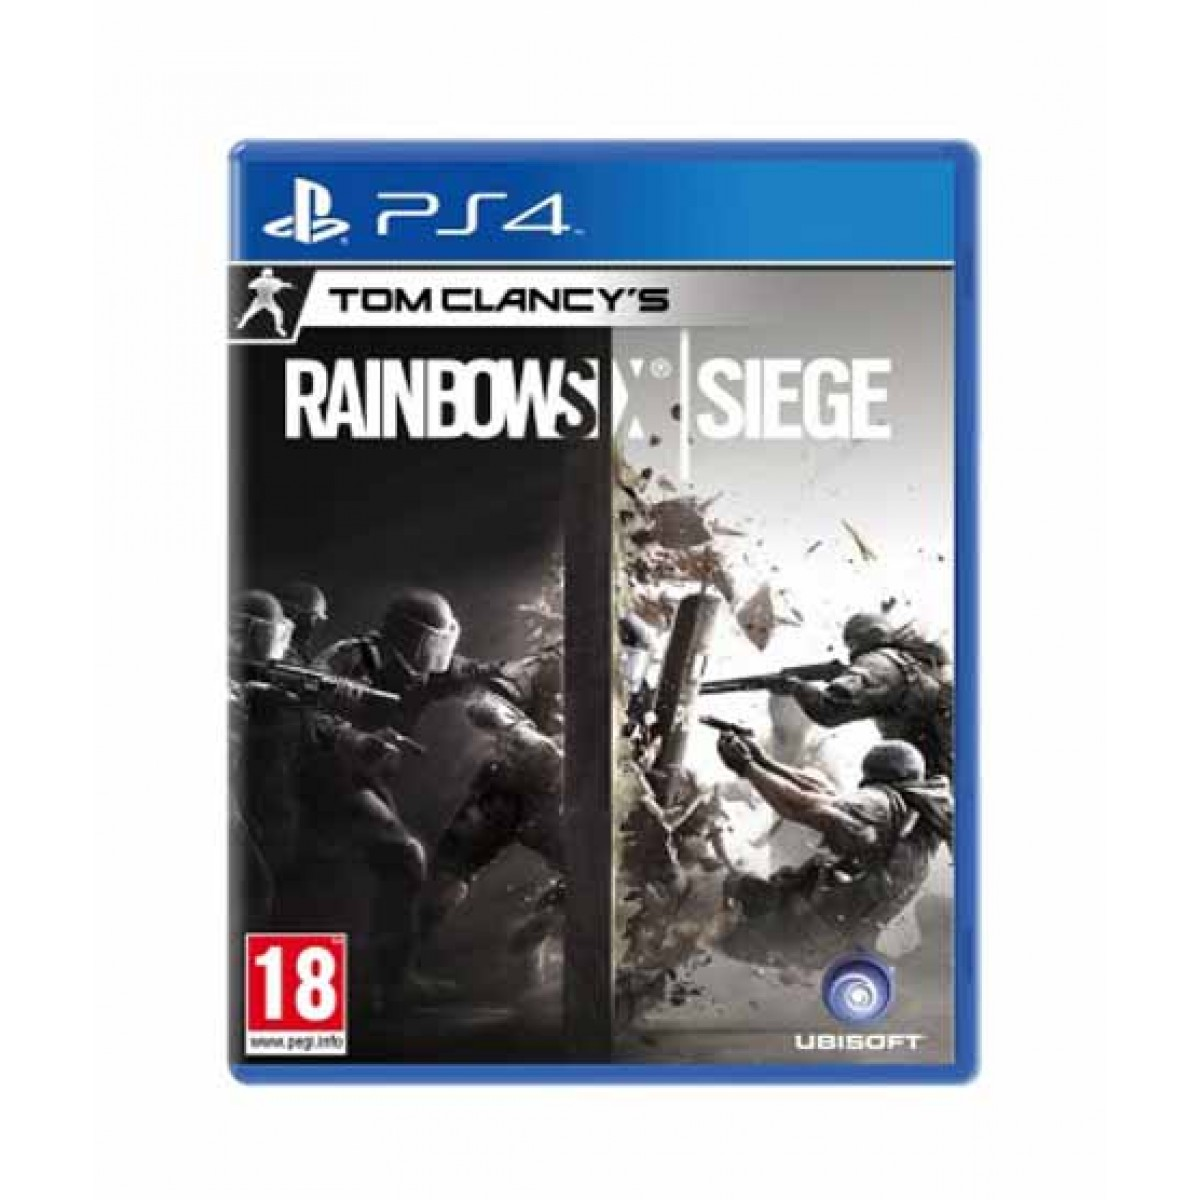 Tom Clancy's Rainbow Six Siege Game For PS4